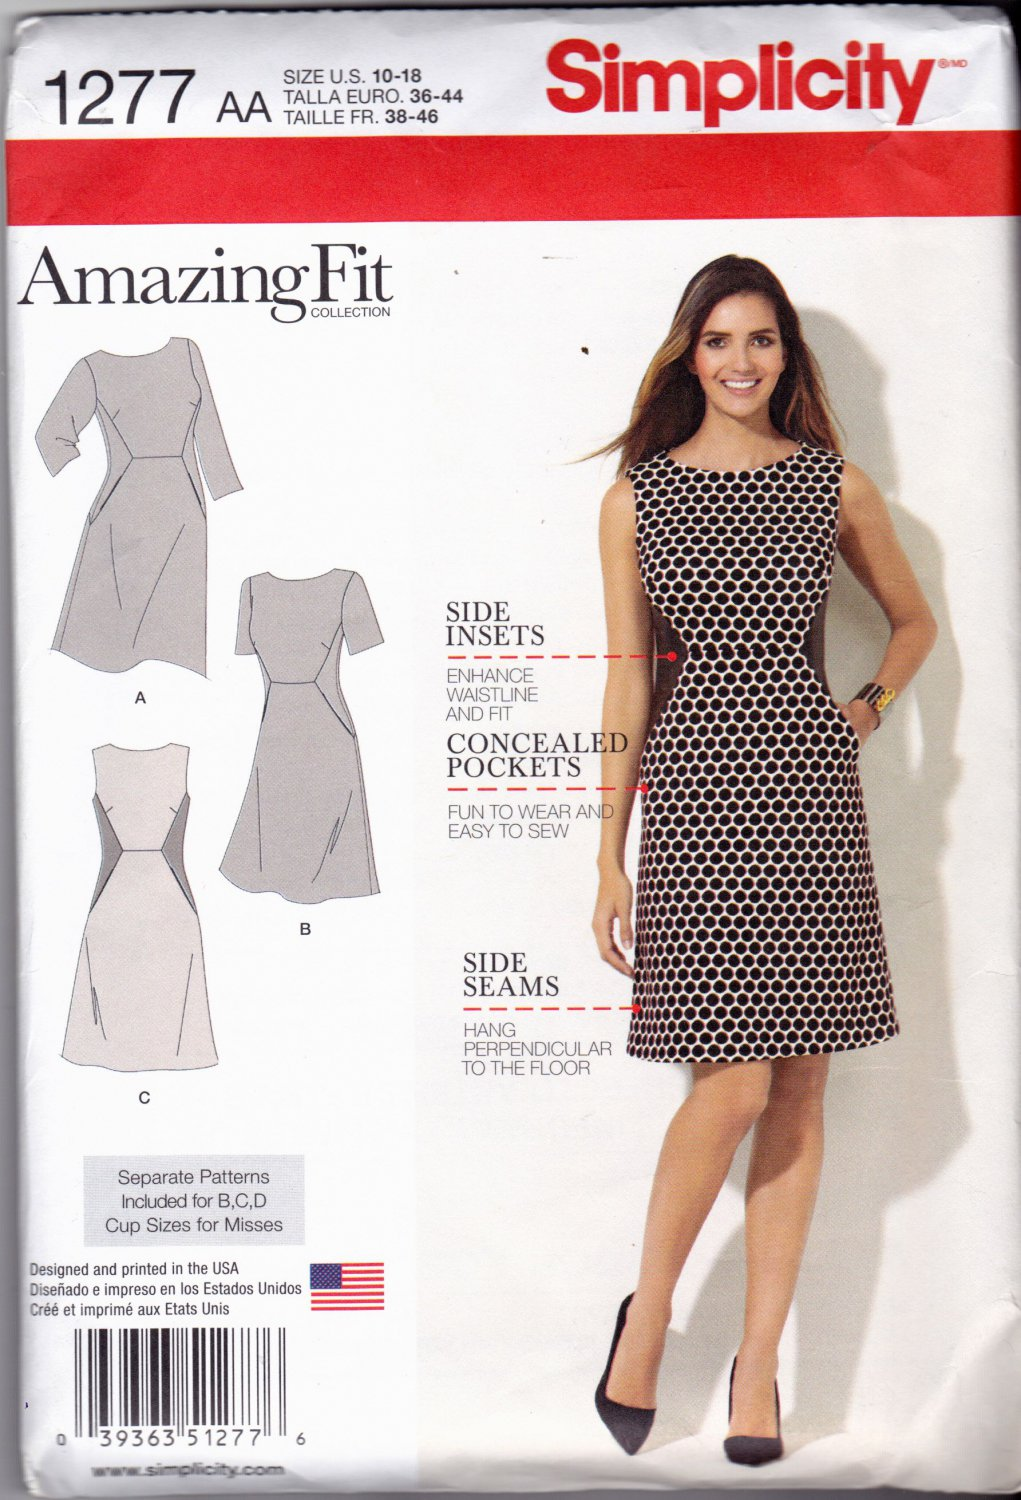 Simplicity 1277 Pattern uncut 10 12 14 16 18 Amazing Fit Dress Slim Average Curvy